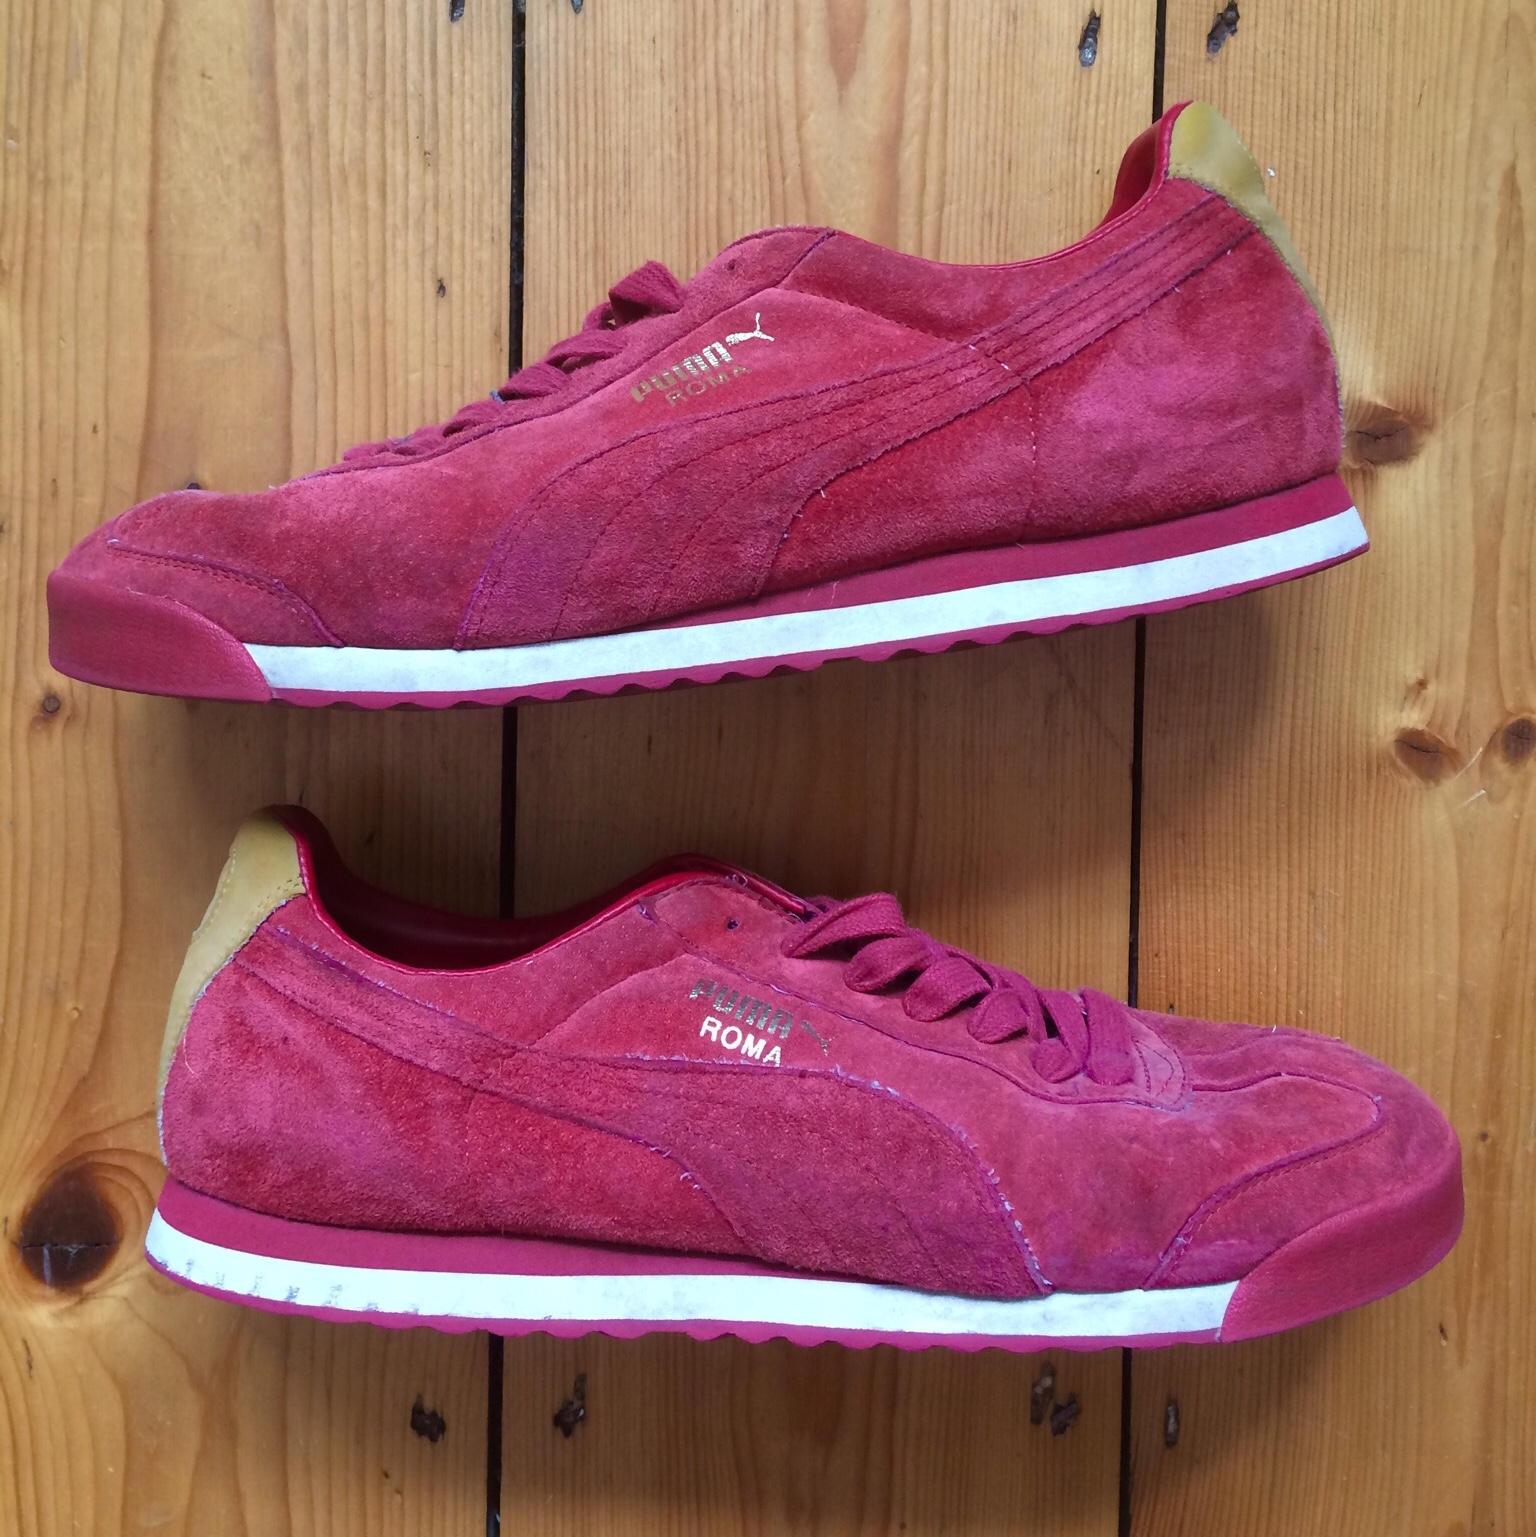 watch ed3a6 c4f13 Puma Roma. Red Suede with gold and white ⚪️ Not seen ...